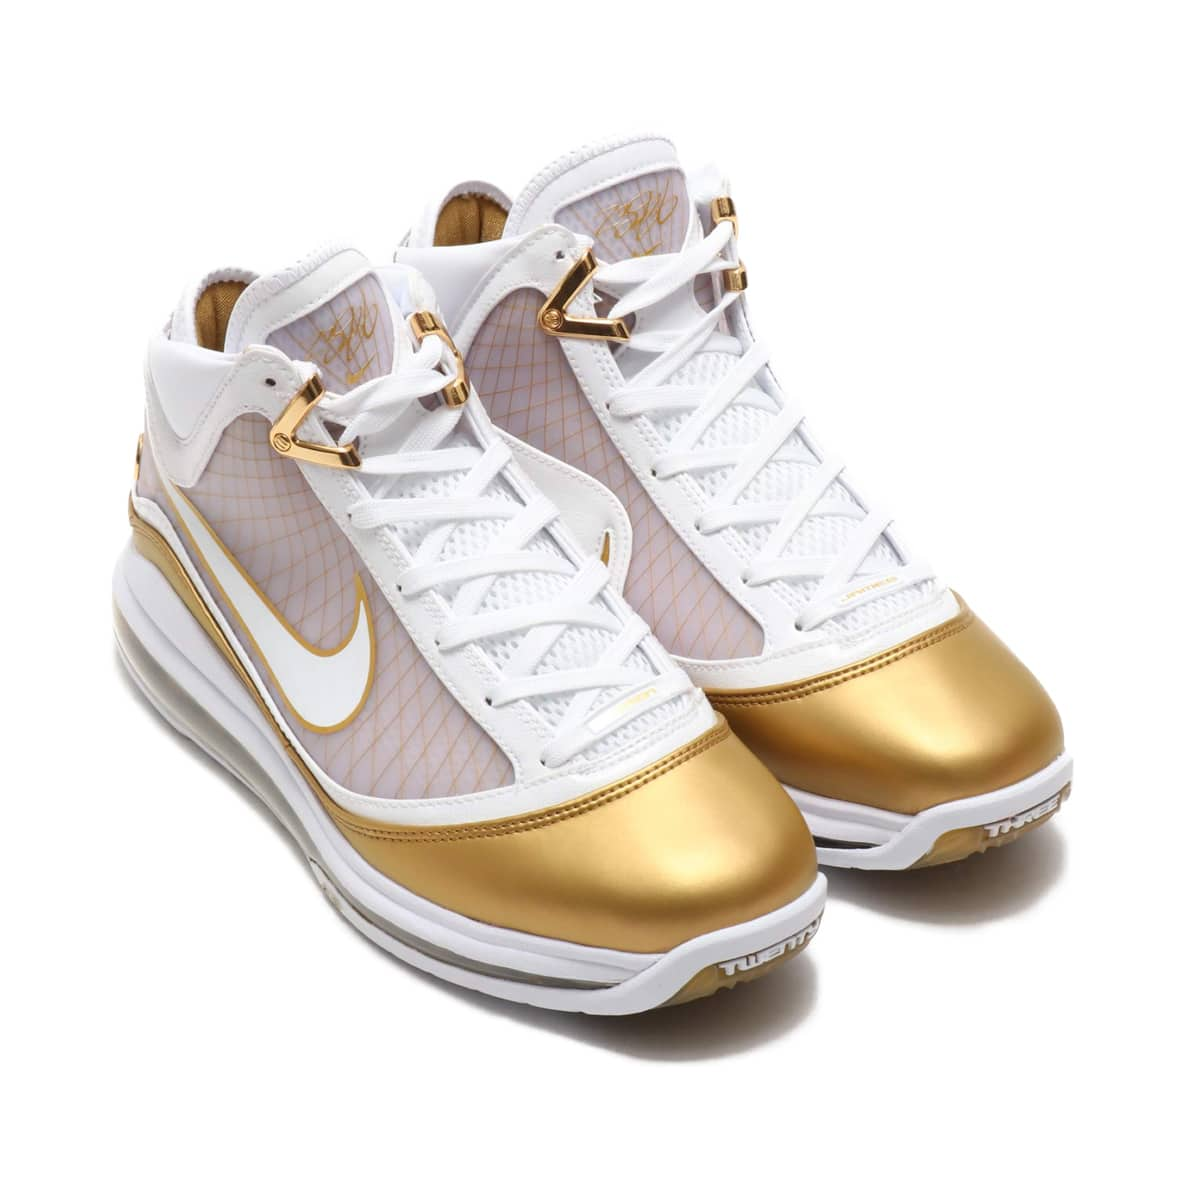 NIKE LEBRON VII QS WHITE/WHITE-METALLIC GOLD 20SP-S_photo_large